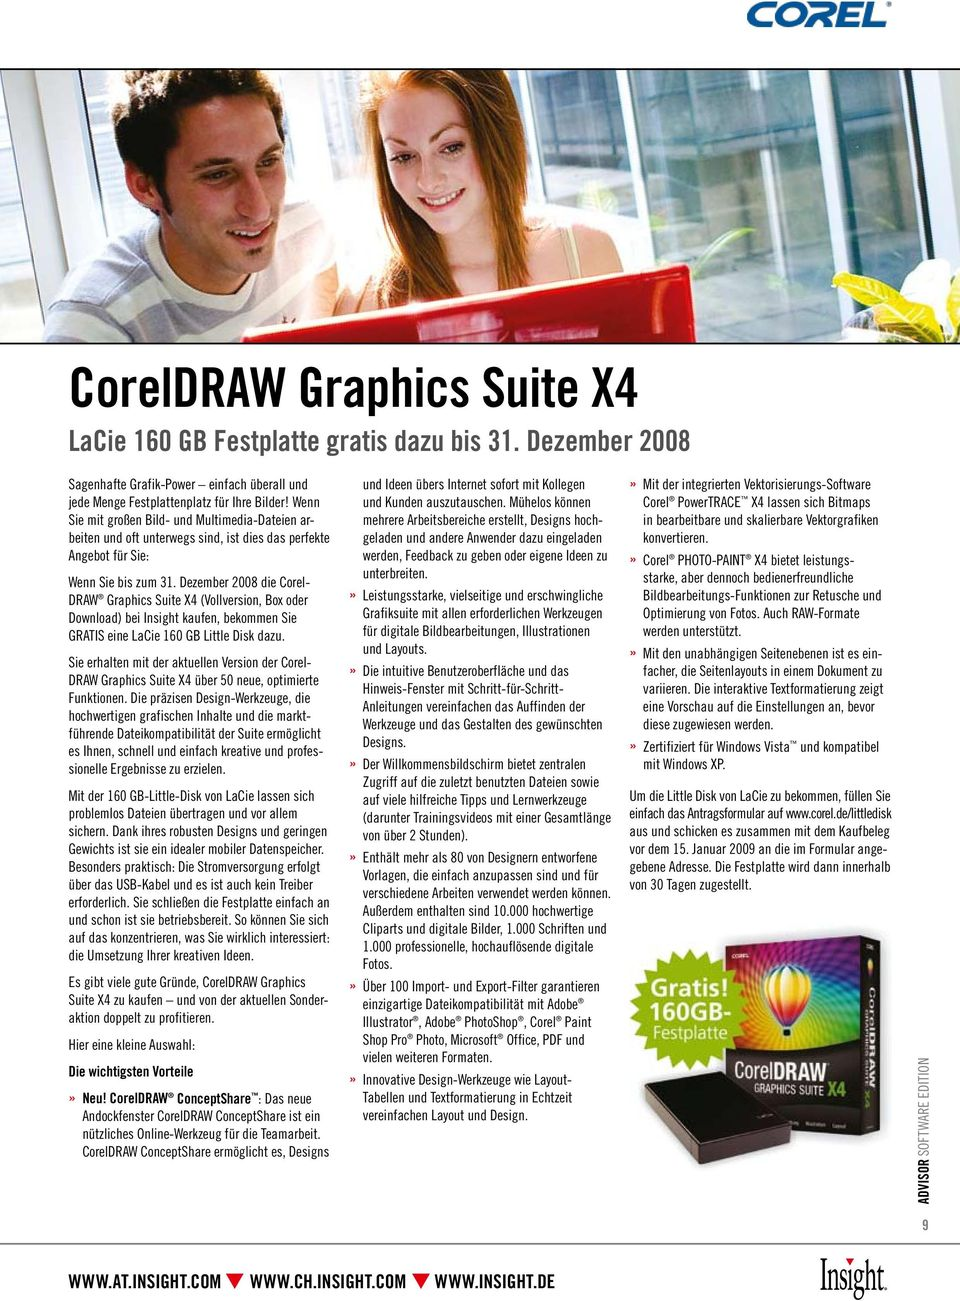 Dezember 2008 die Corel- DRAW Graphics Suite X4 (Vollversion, Box oder Download) bei Insight kaufen, bekommen Sie GRATIS eine LaCie 160 GB Little Disk dazu.